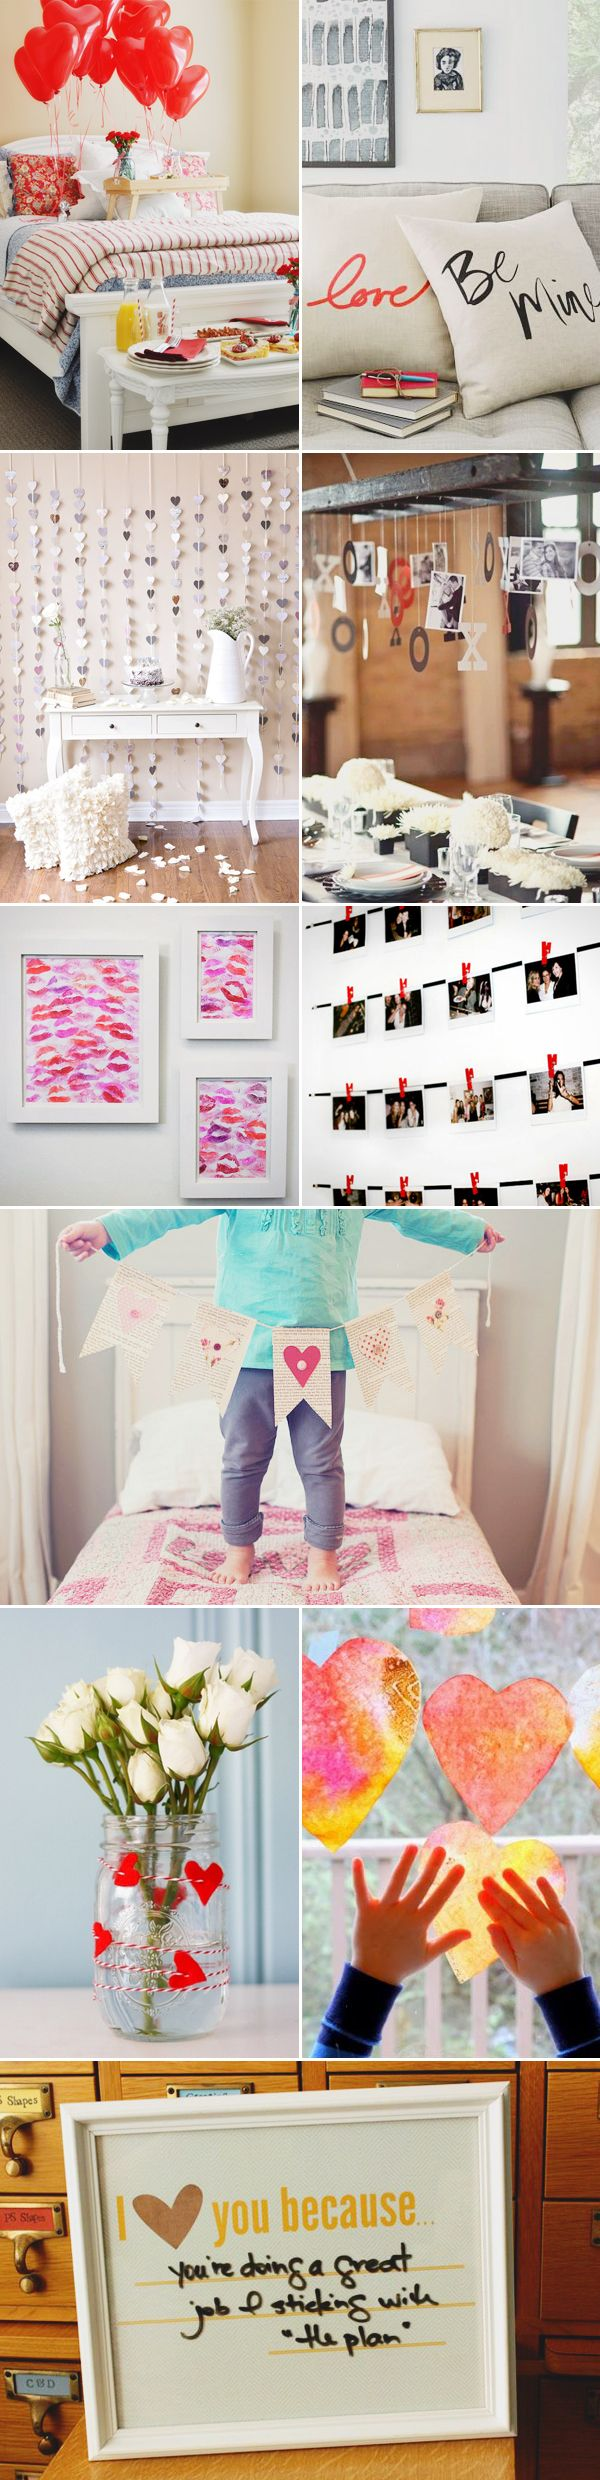 328 best valentines day ideas images on pinterest | funny